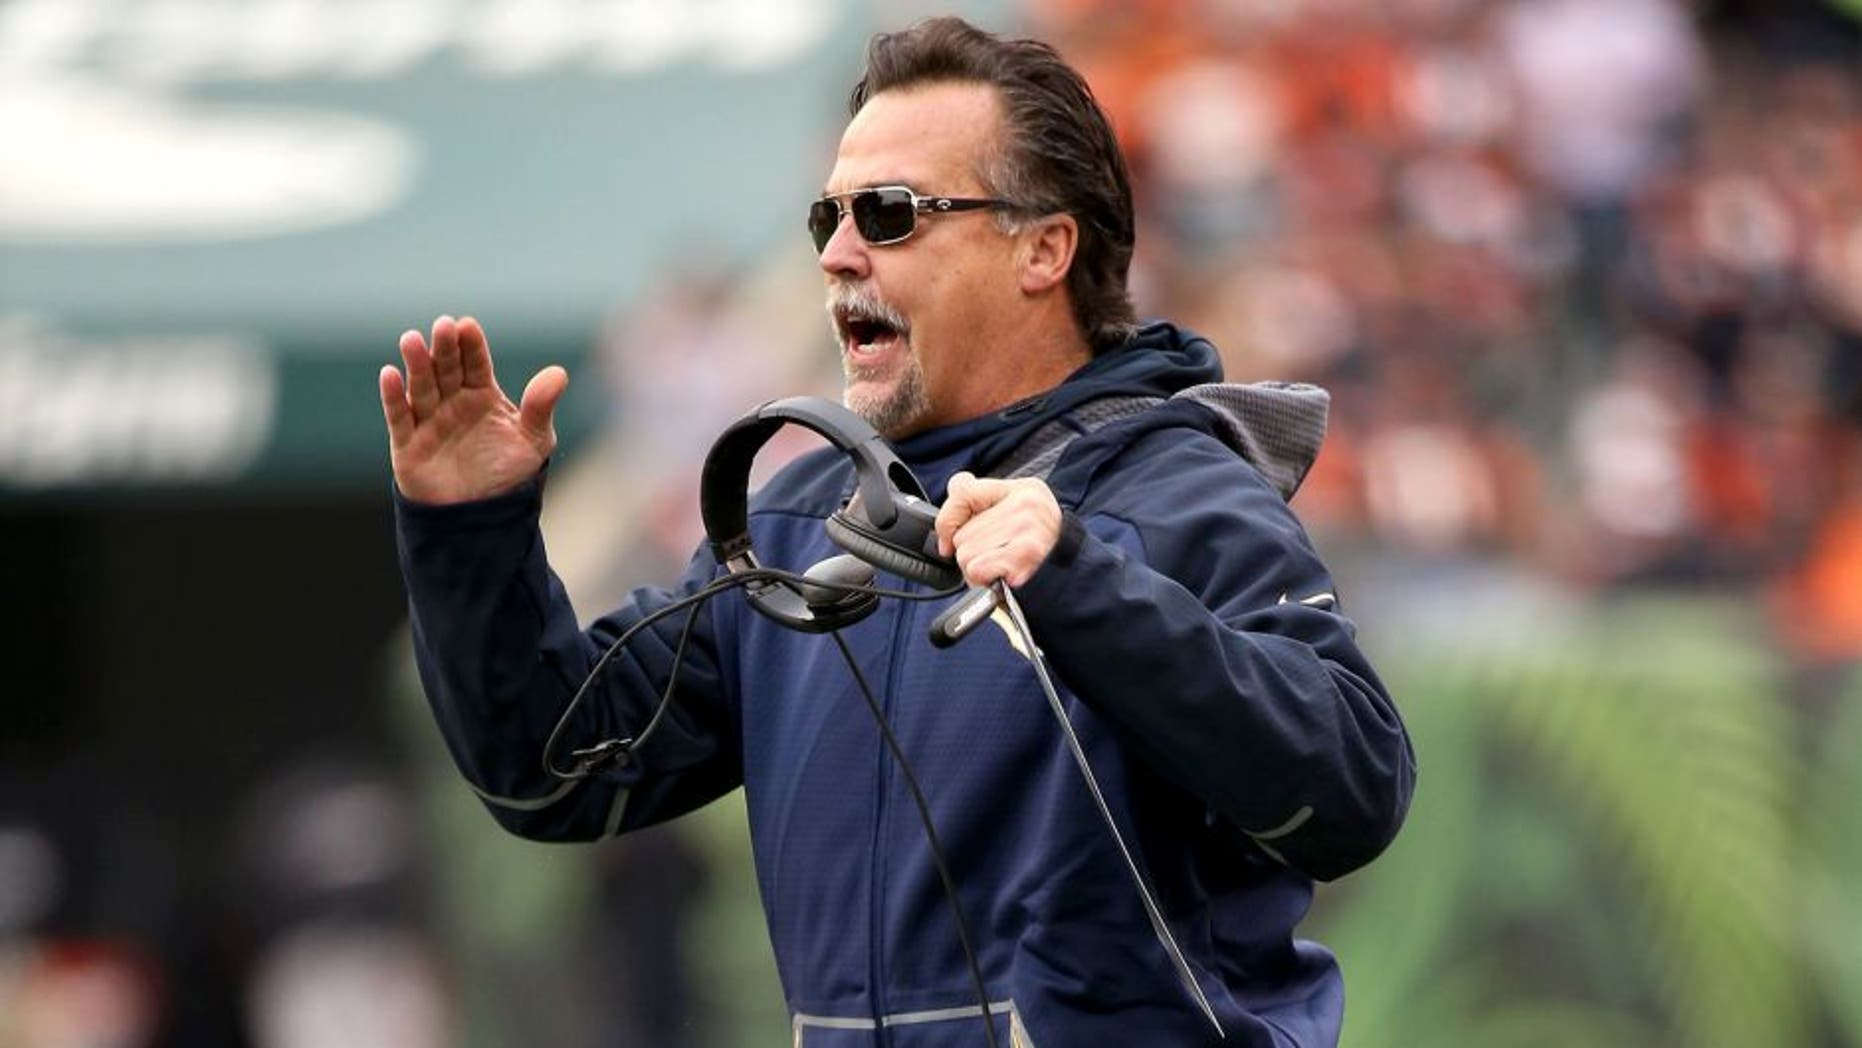 CINCINNATI, OH - NOVEMBER 29: Head coach Jeff Fisher of the St. Louis Rams calls out during the game against the Cincinnati Bengals at Paul Brown Stadium on November 29, 2015 in Cincinnati, Ohio. (Photo by Andy Lyons/Getty Images)